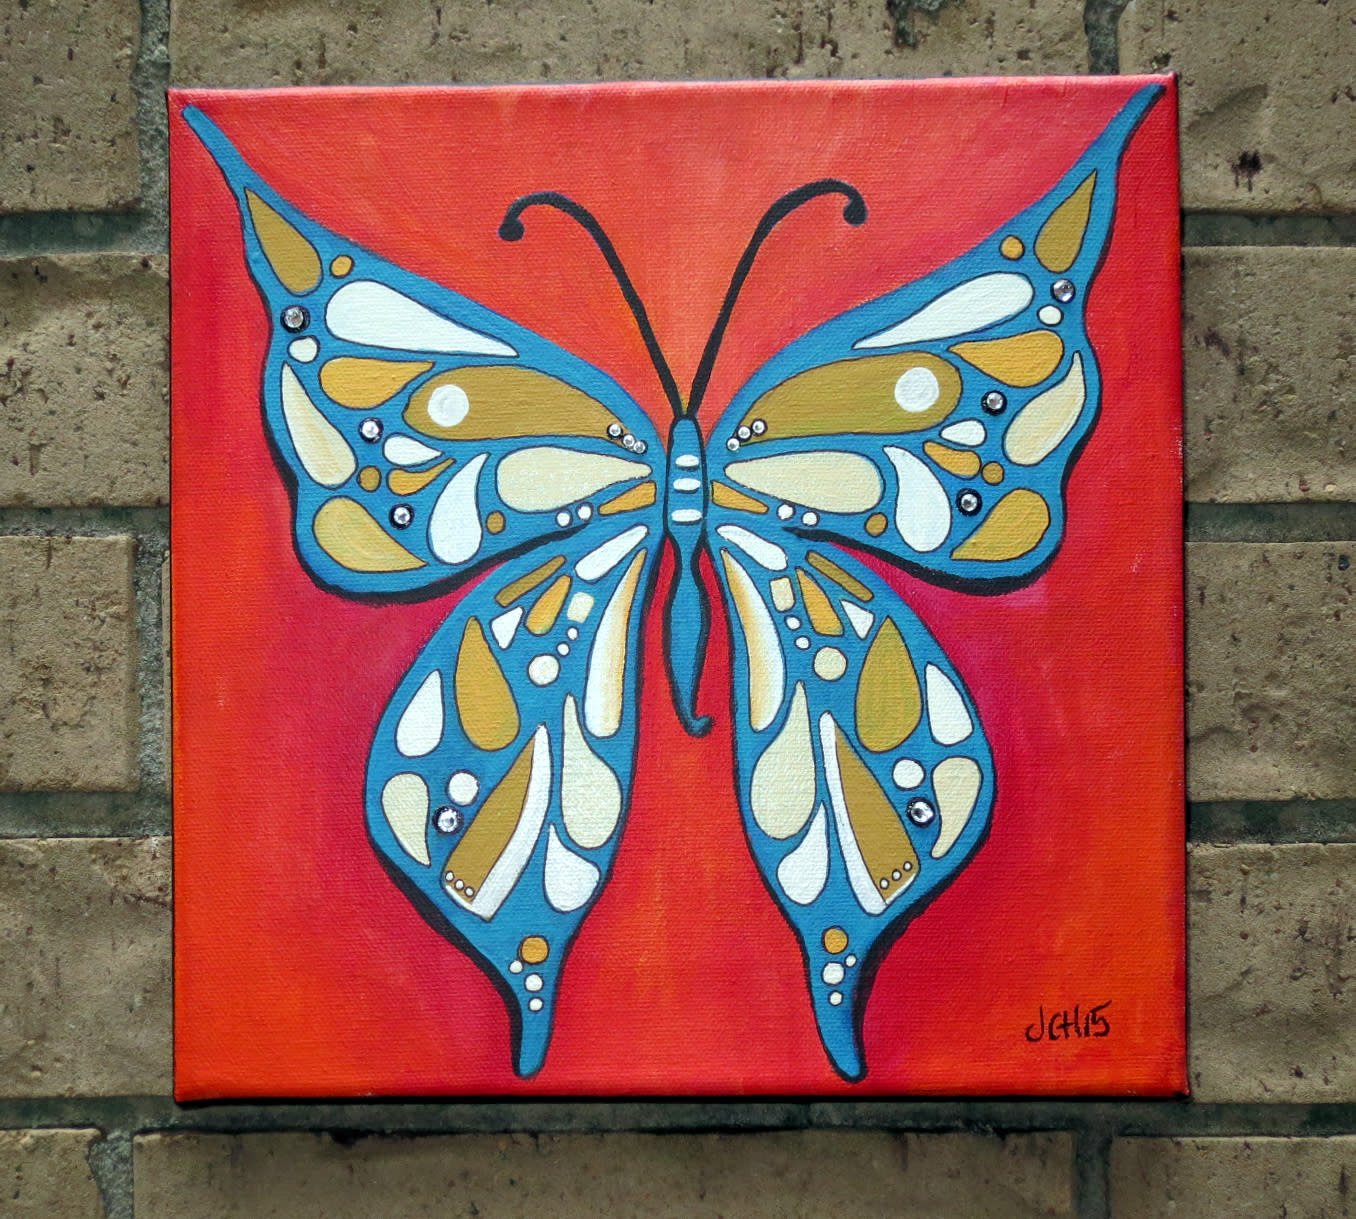 Groovy butterfly outside wall b9ag8y